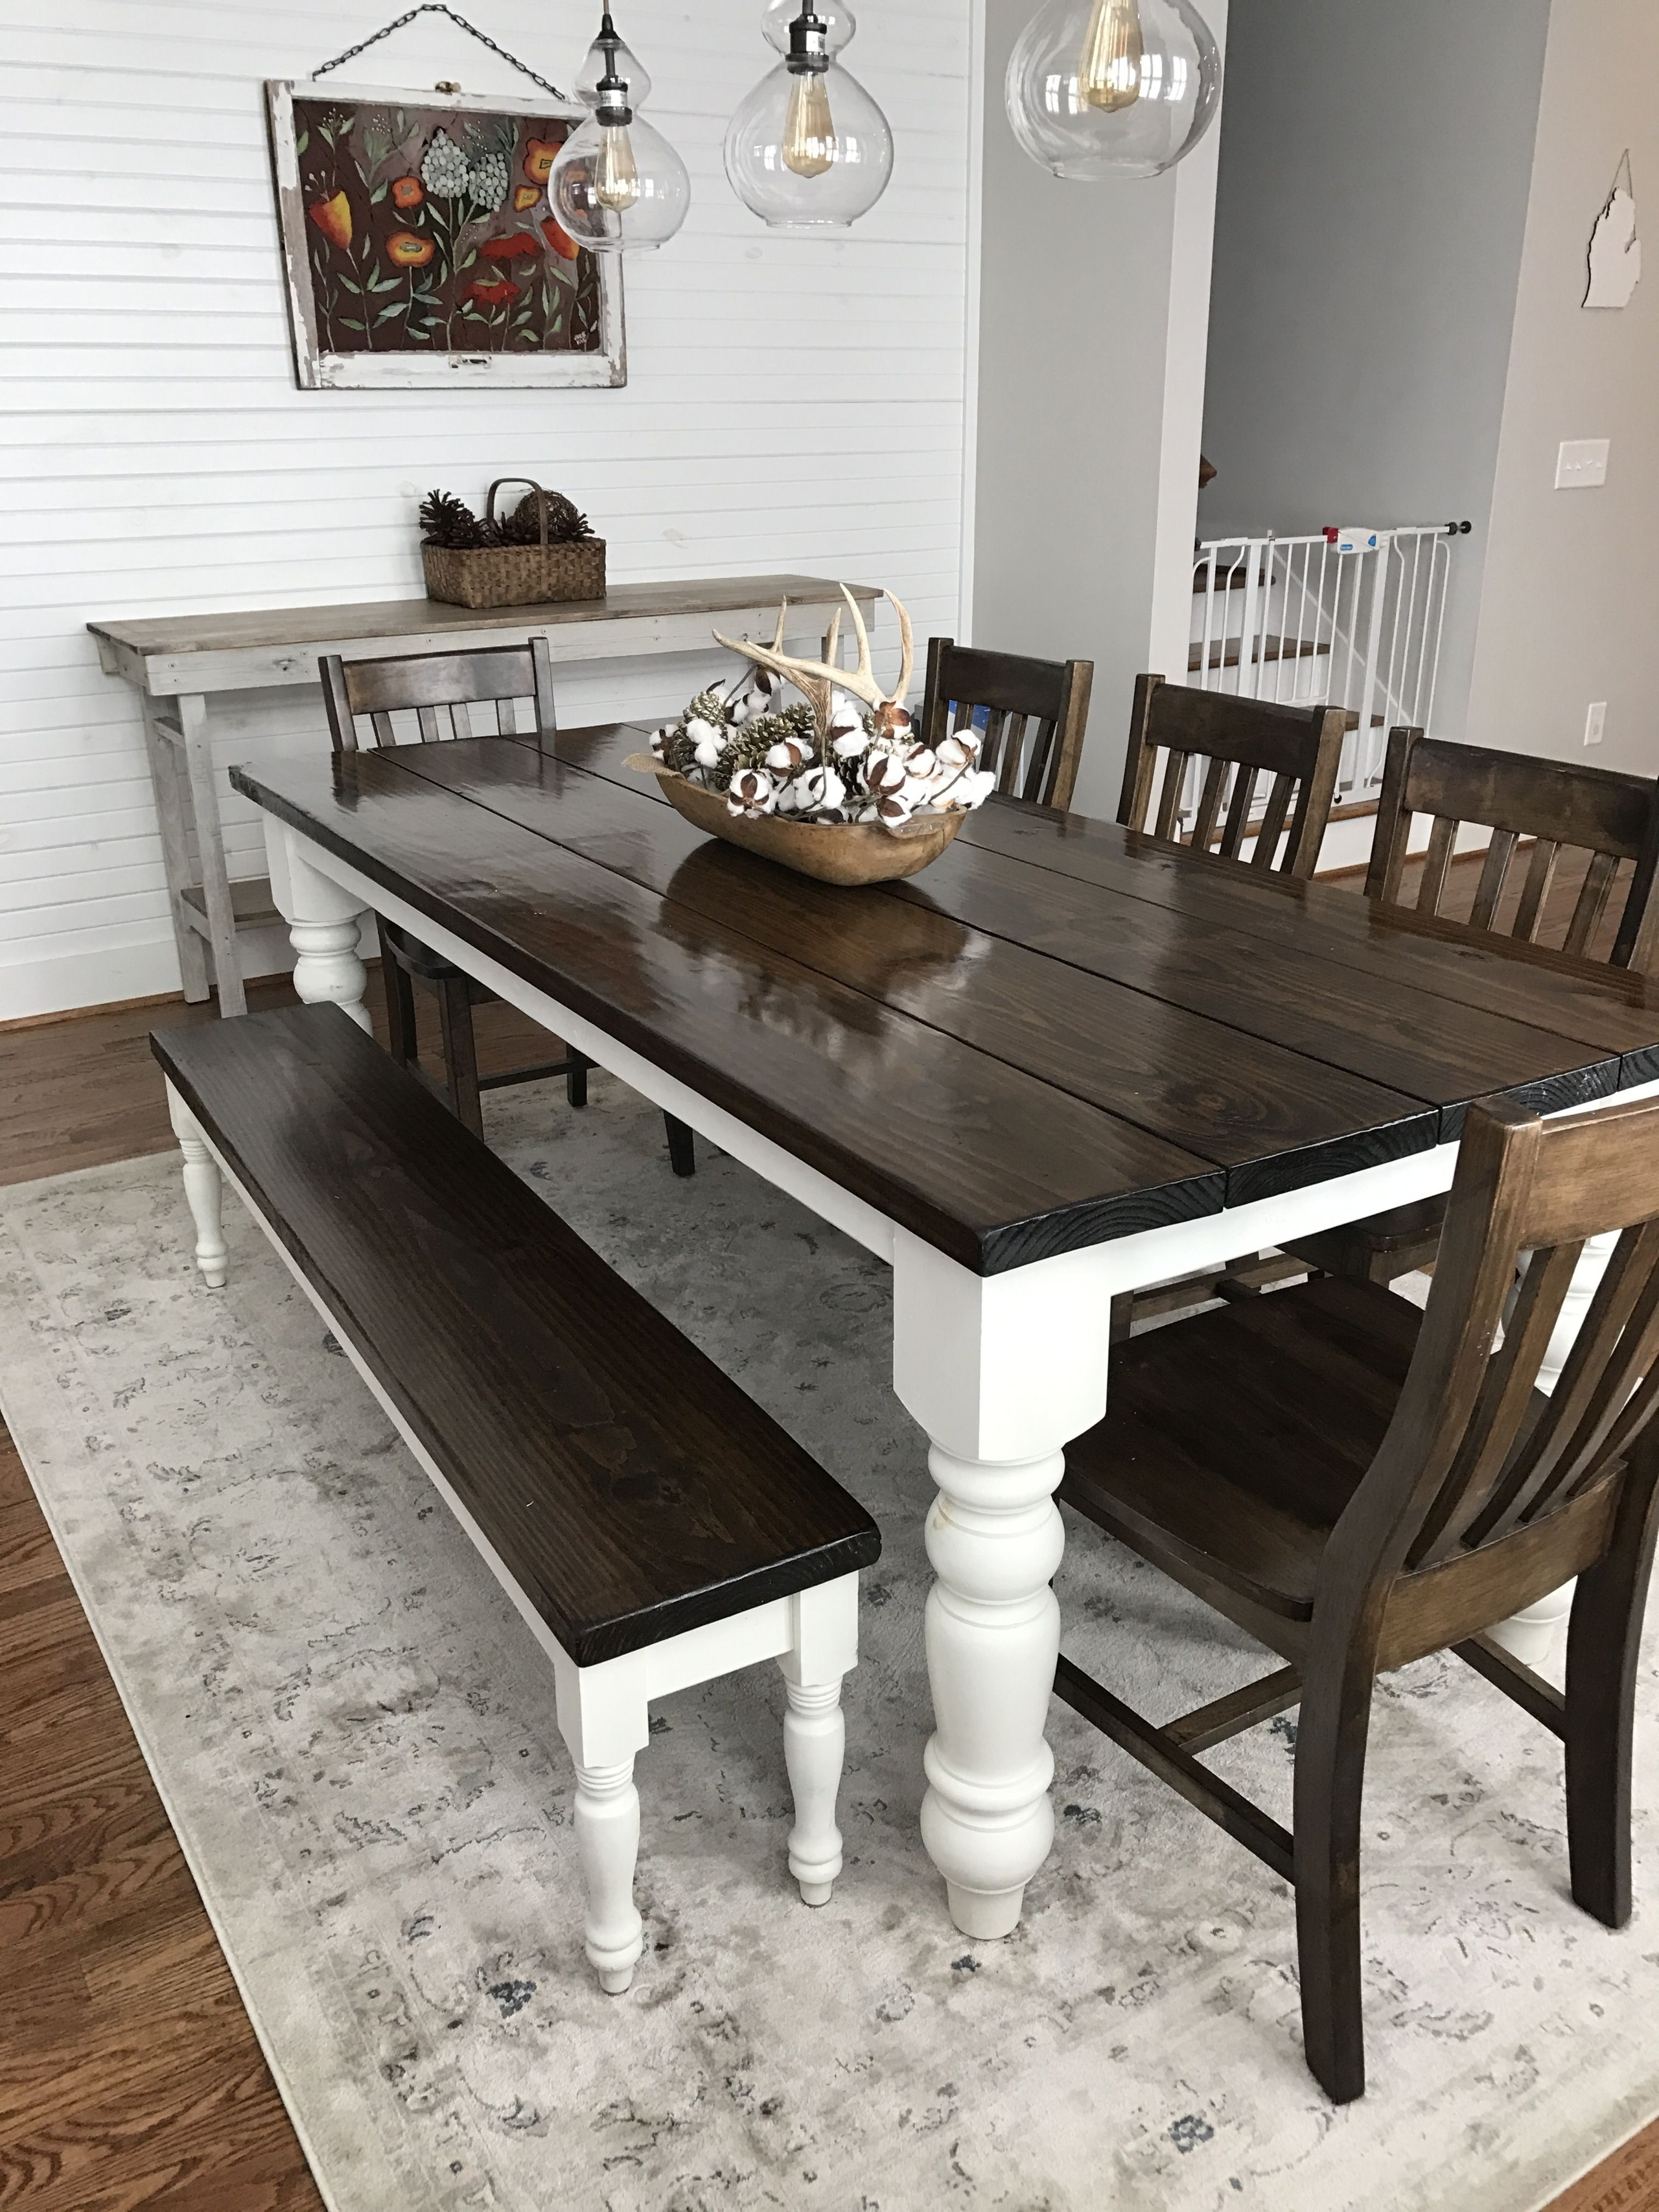 bench for kitchen table modern images dining with visual hunt best 25 ideas on pinterest